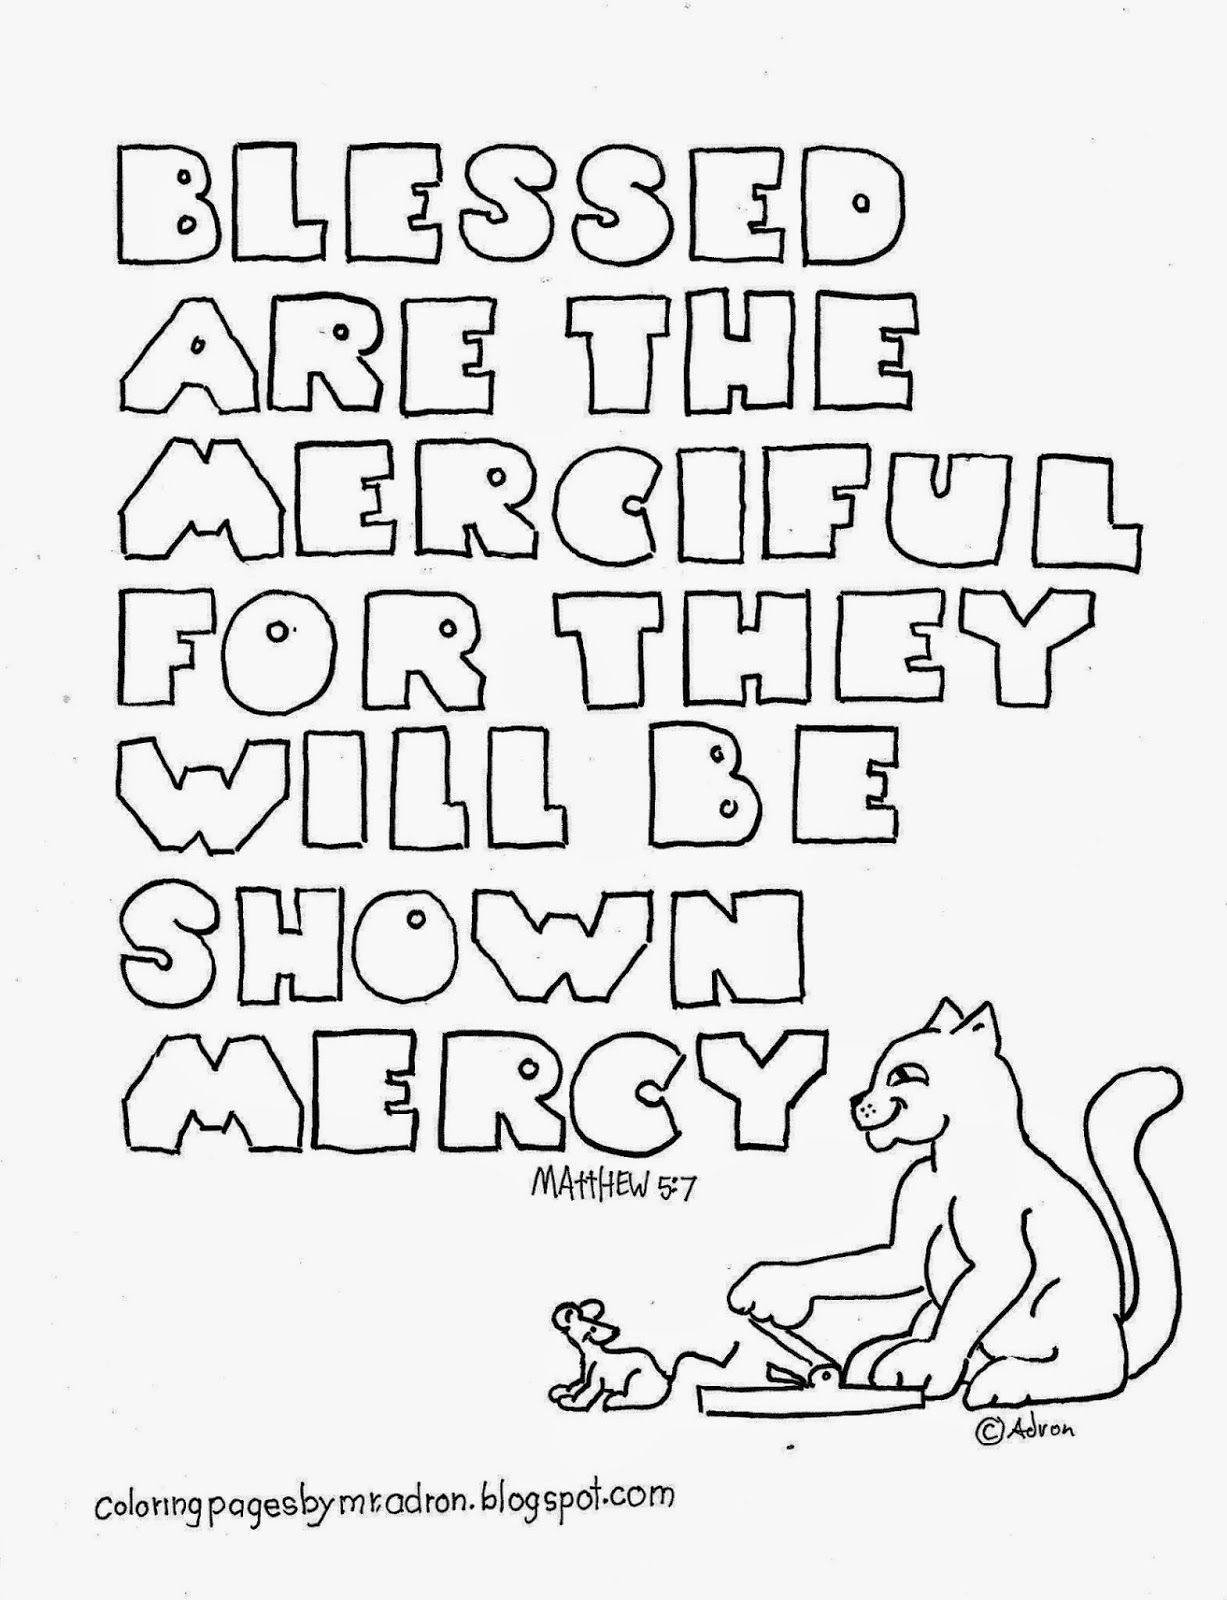 Blessed Are The Merciful Coloring Page See More At My Blog Coloringpagesbymradronblogspot